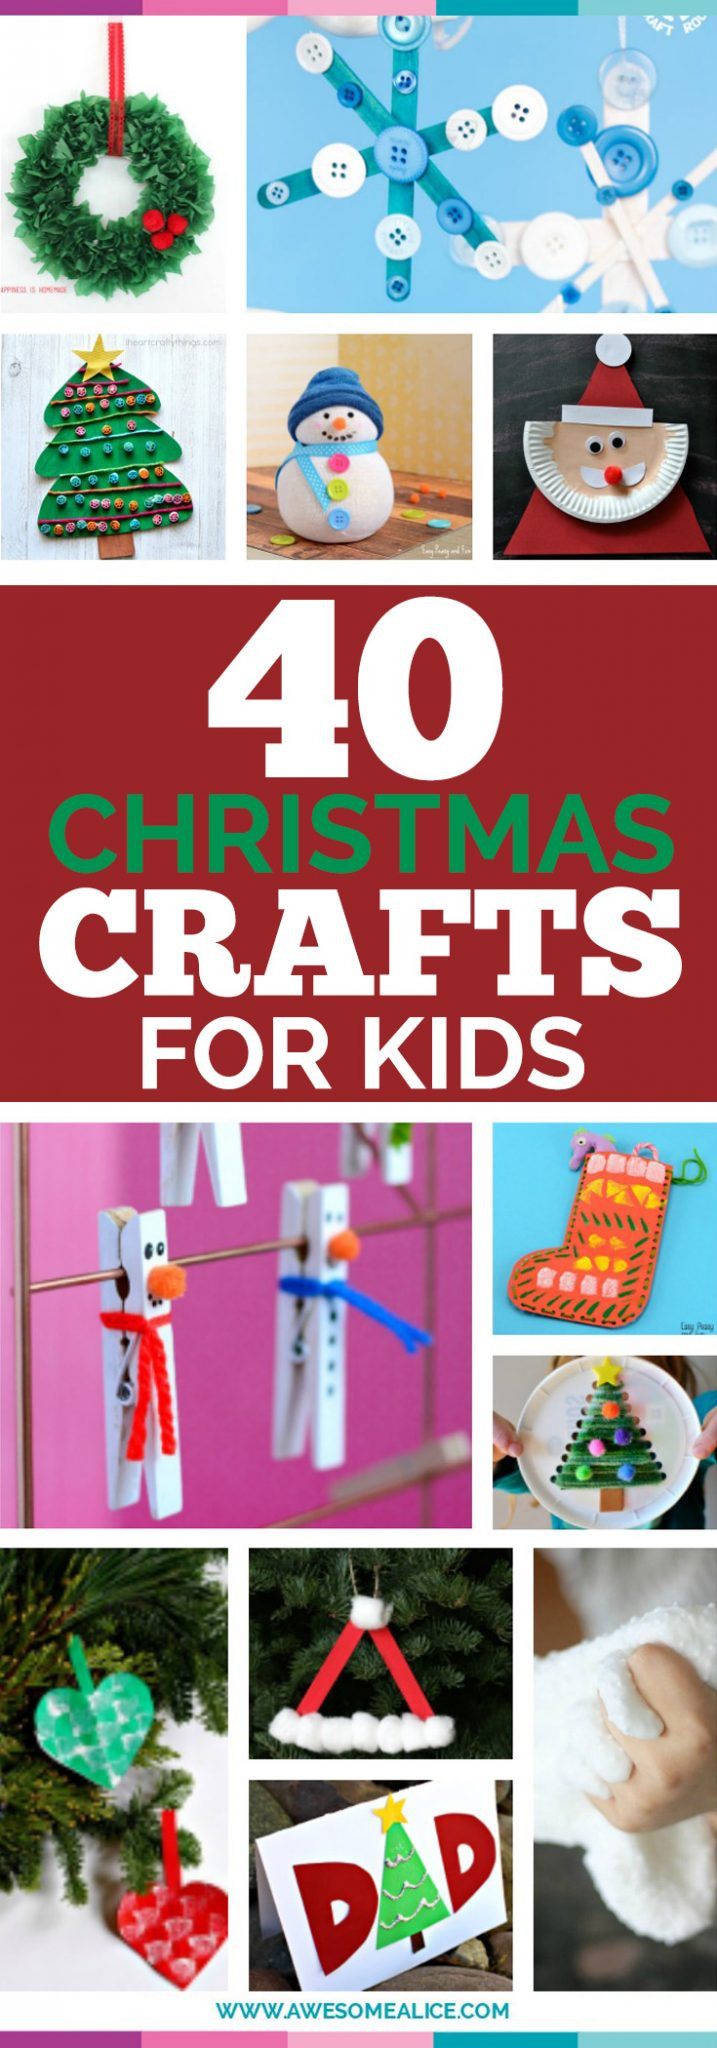 Best ideas about Easy Cheap Crafts For Kids . Save or Pin Top 40 Easy And Fun Christmas Crafts For Kids to Make Now.